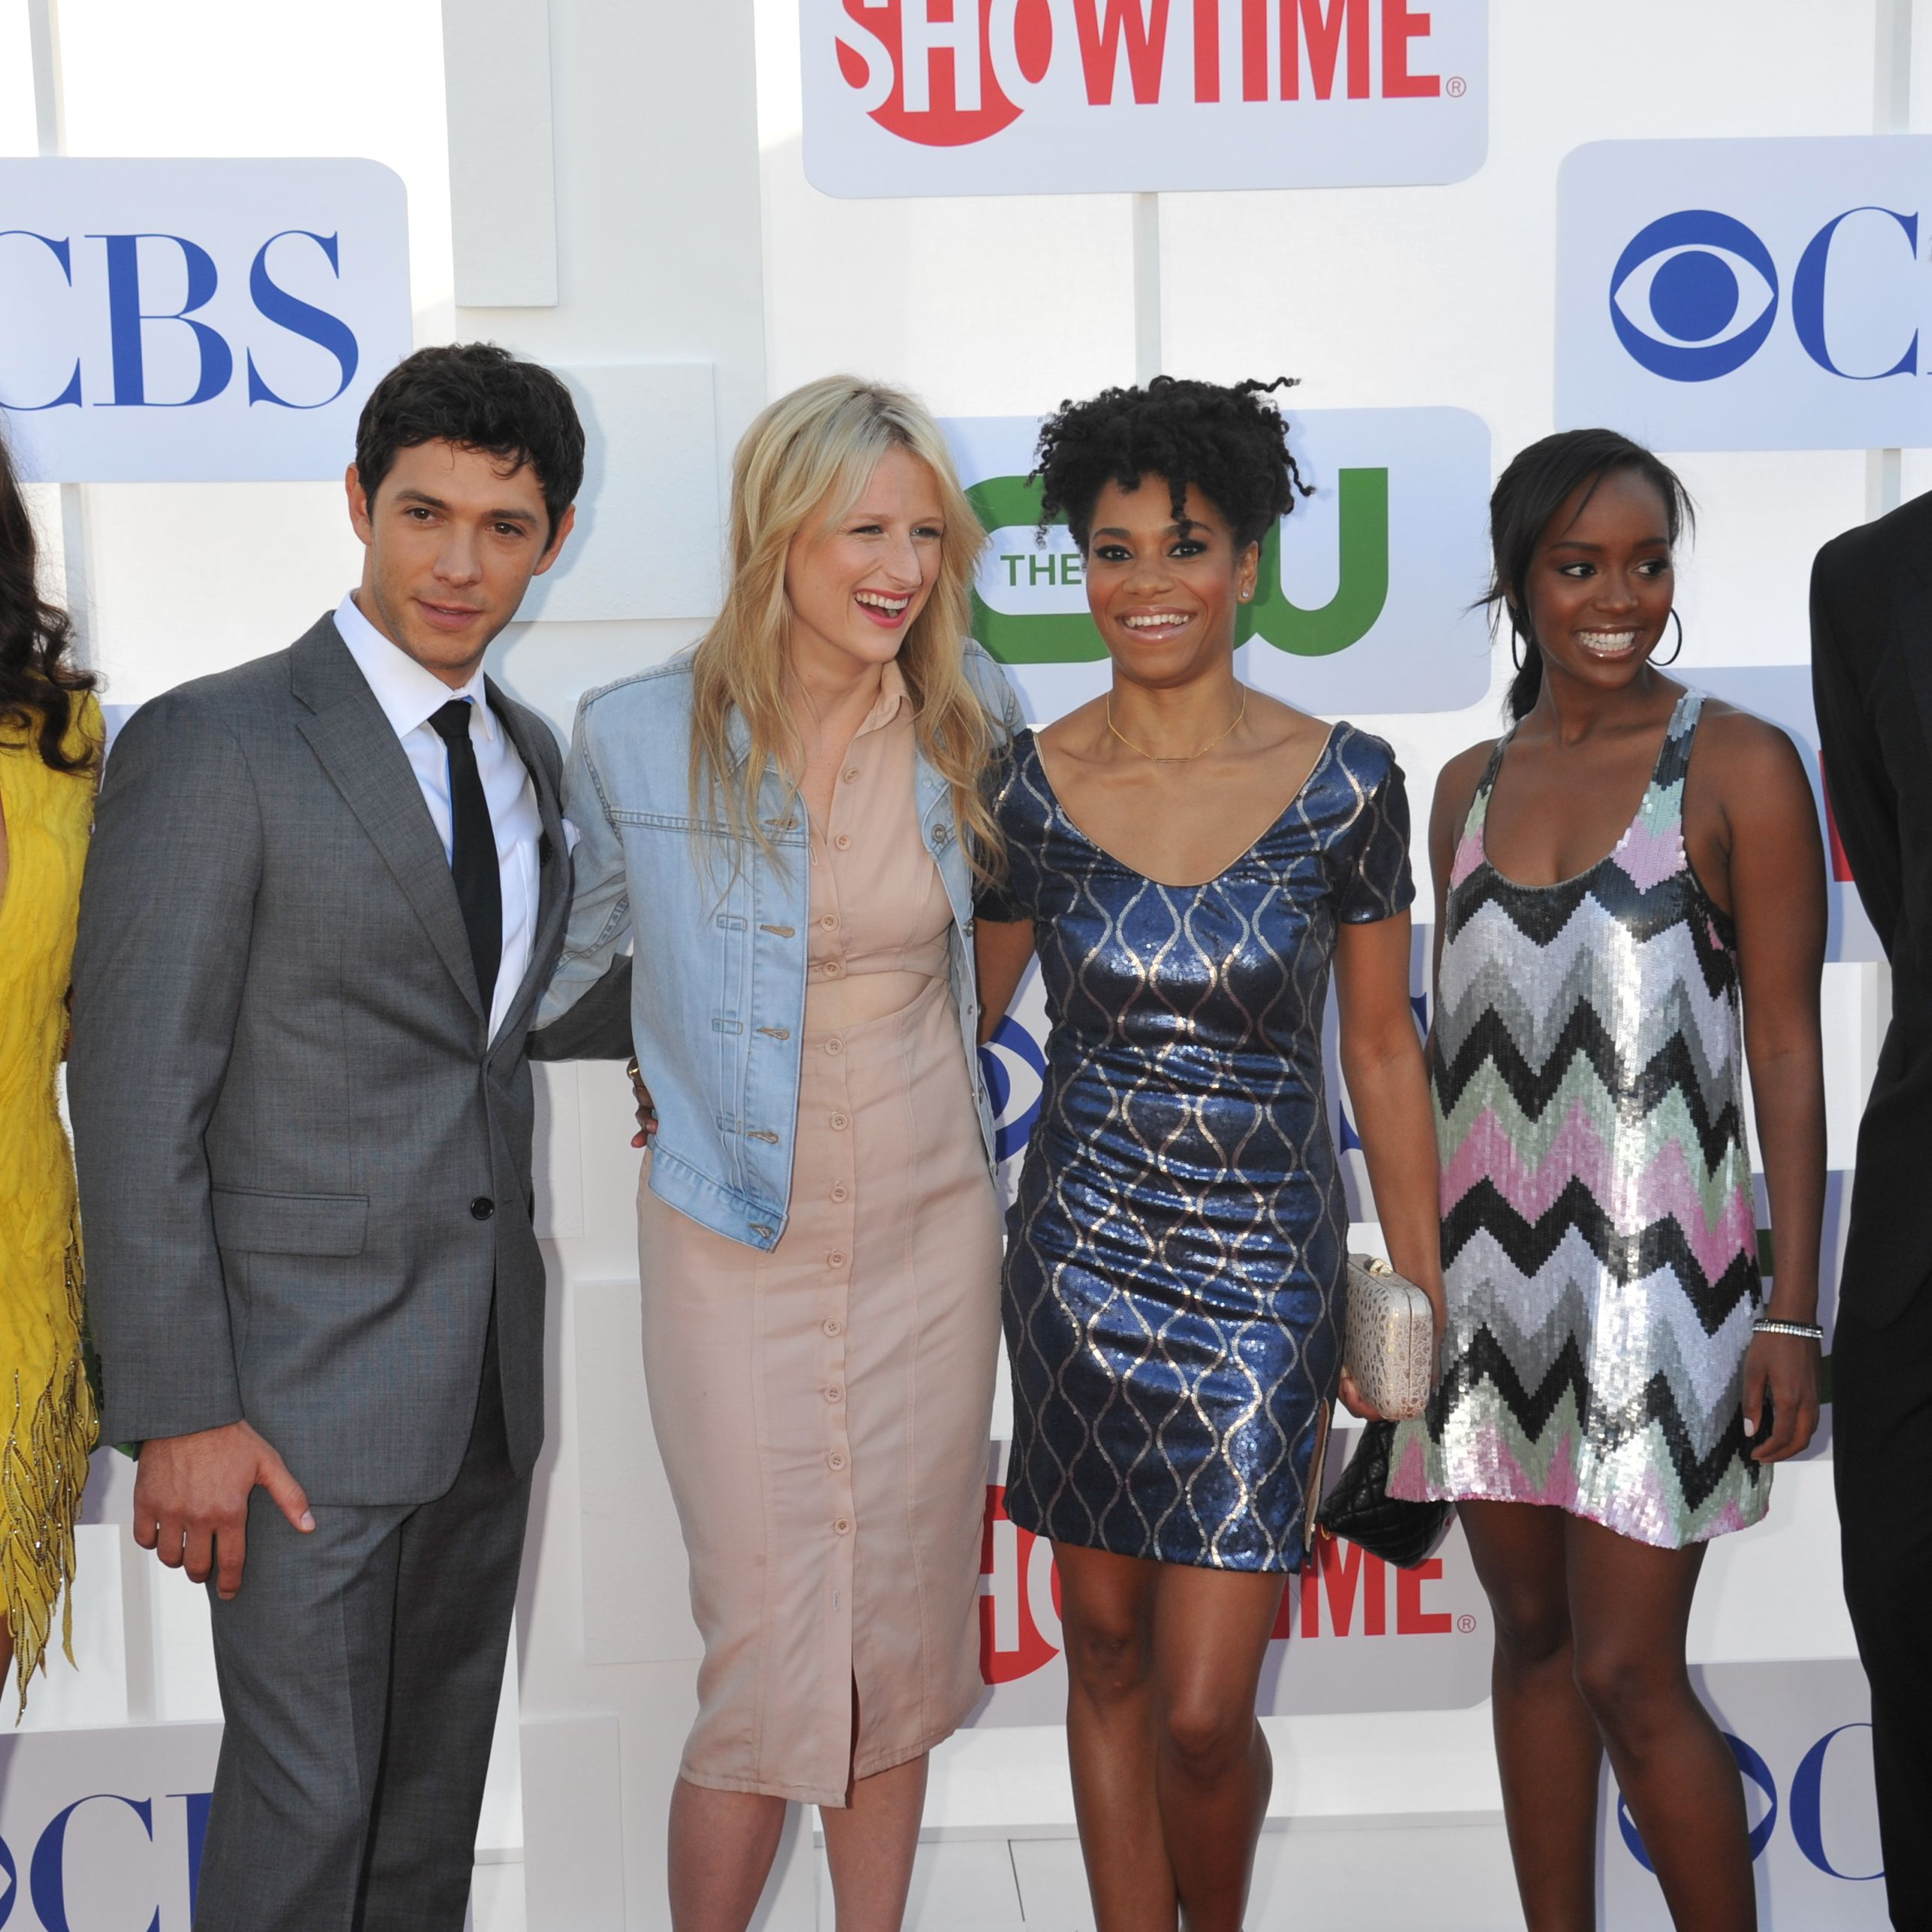 USA - The CW, CBS and Showtime 2012 Summer TCA party.